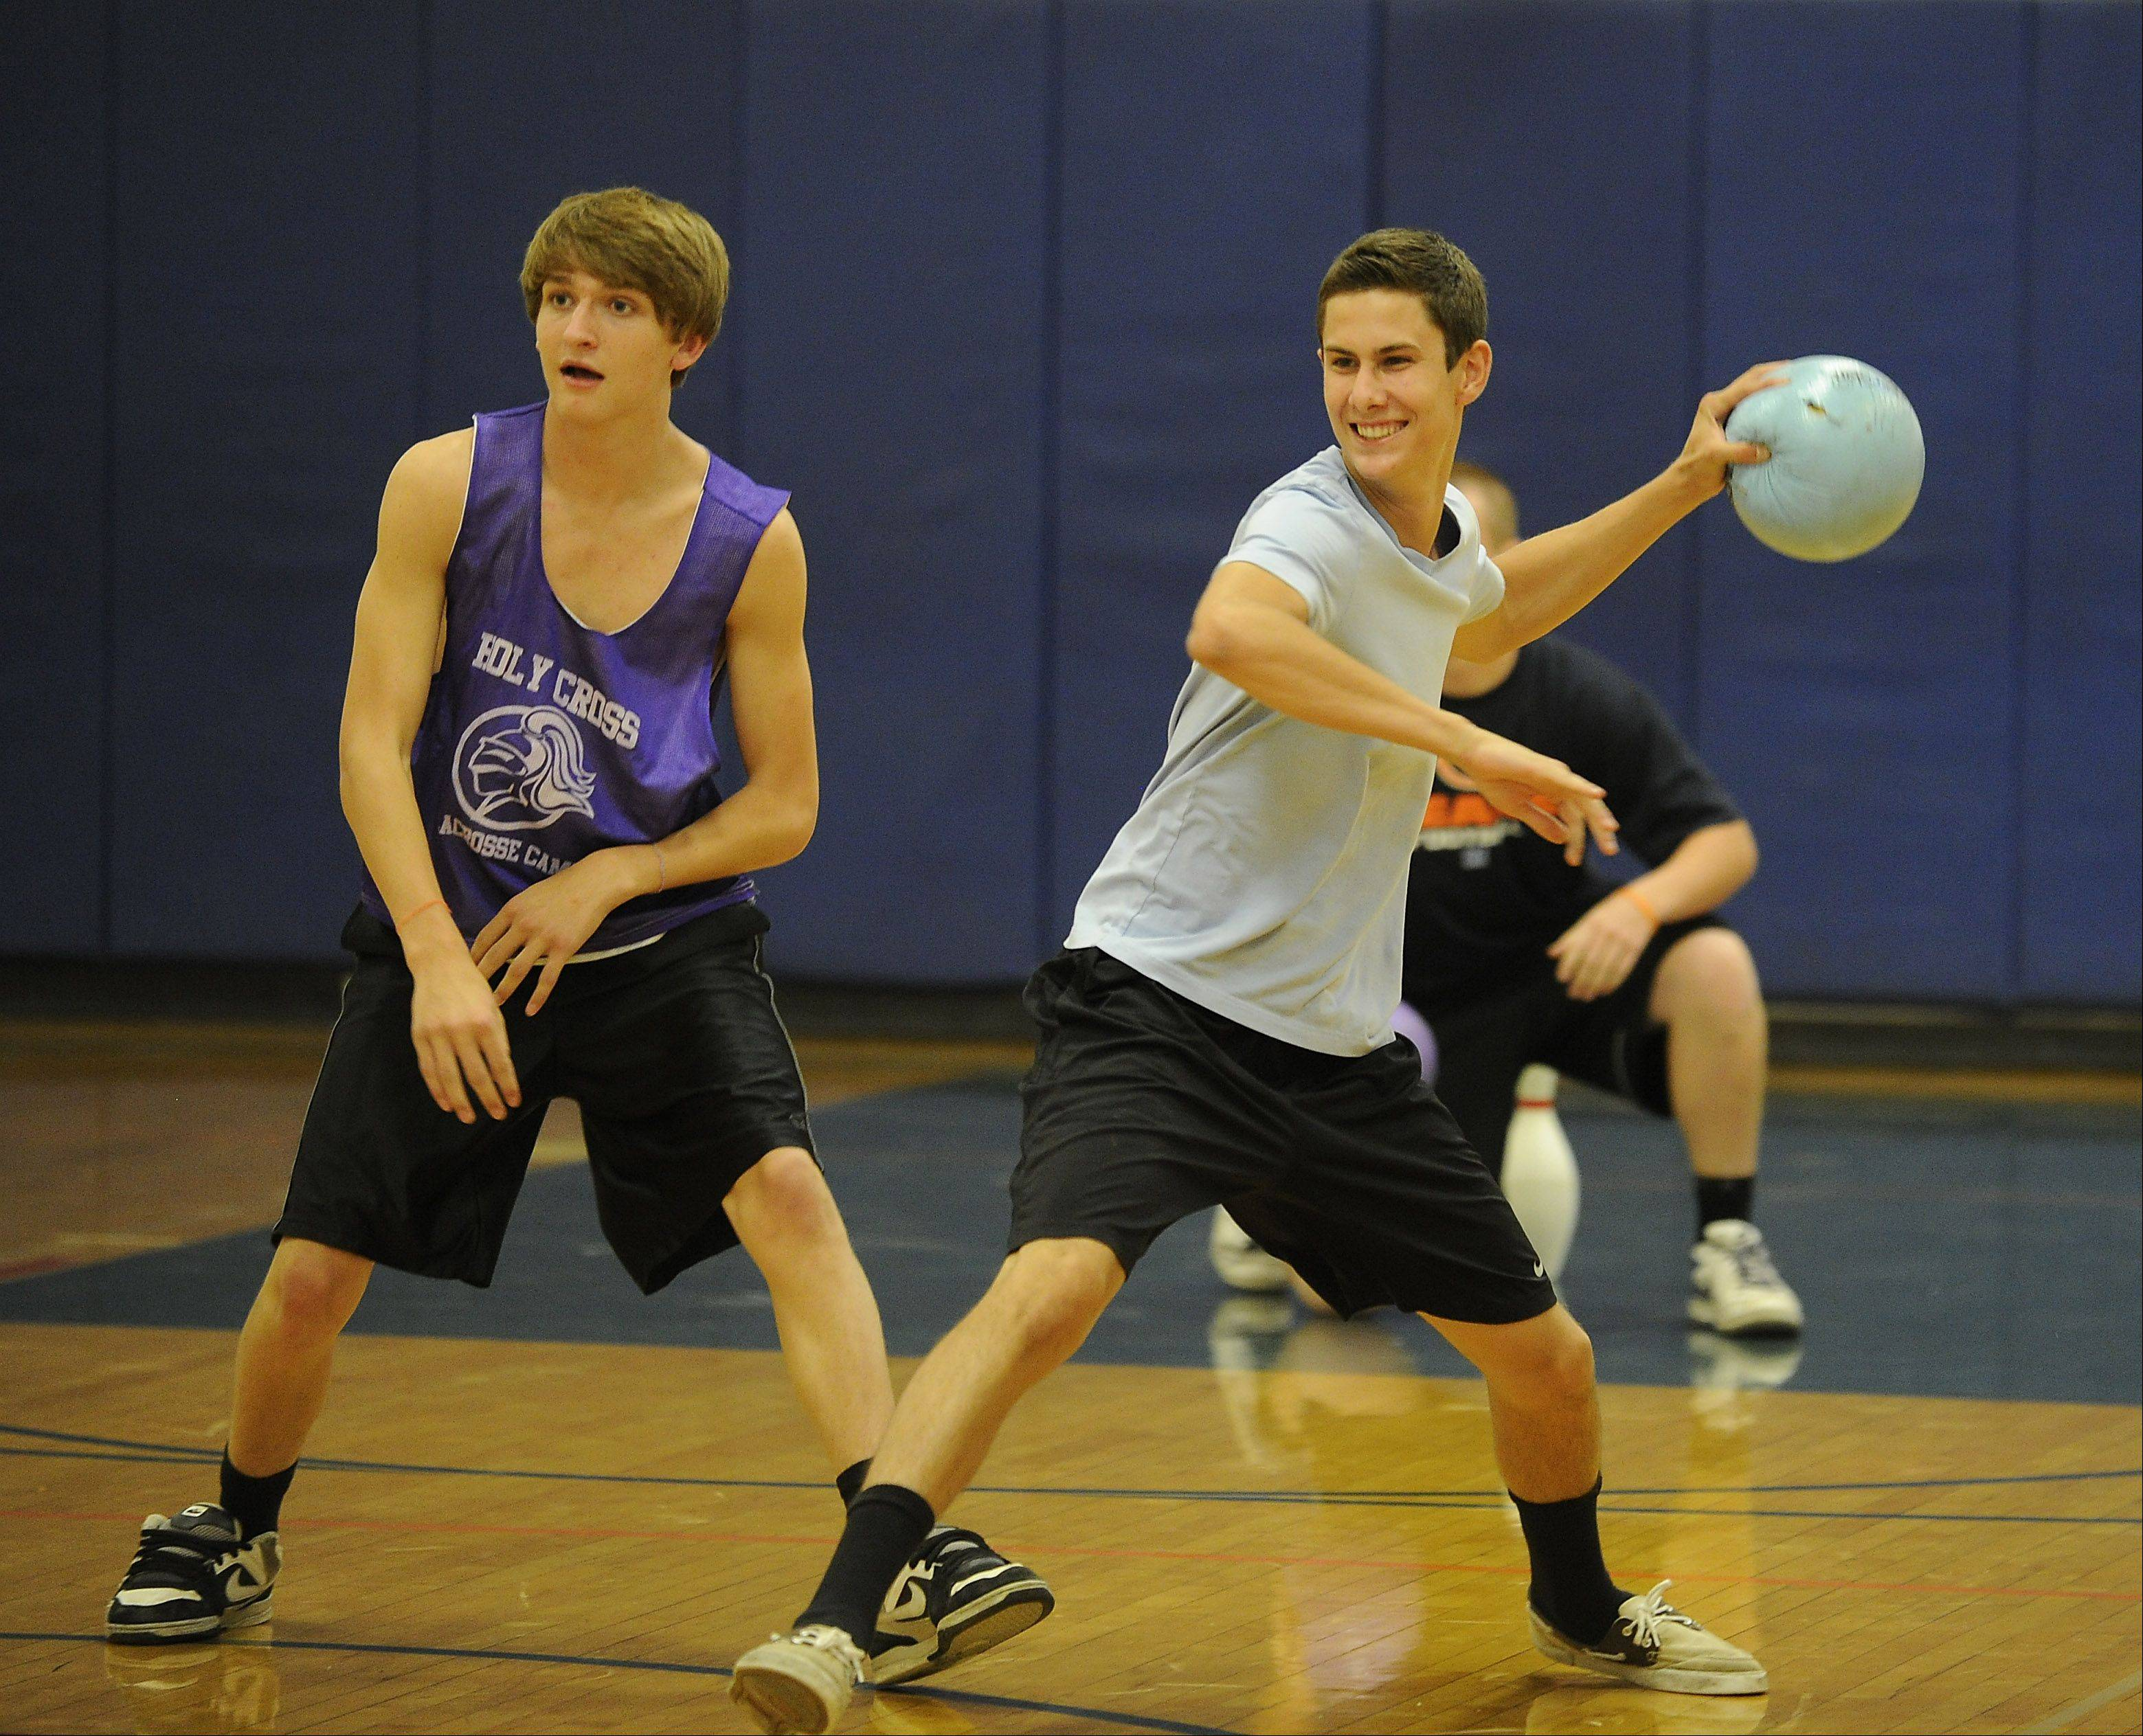 Sean Milbourne, 20, of Libertyville prepares to fling the dodgeball at a foe.